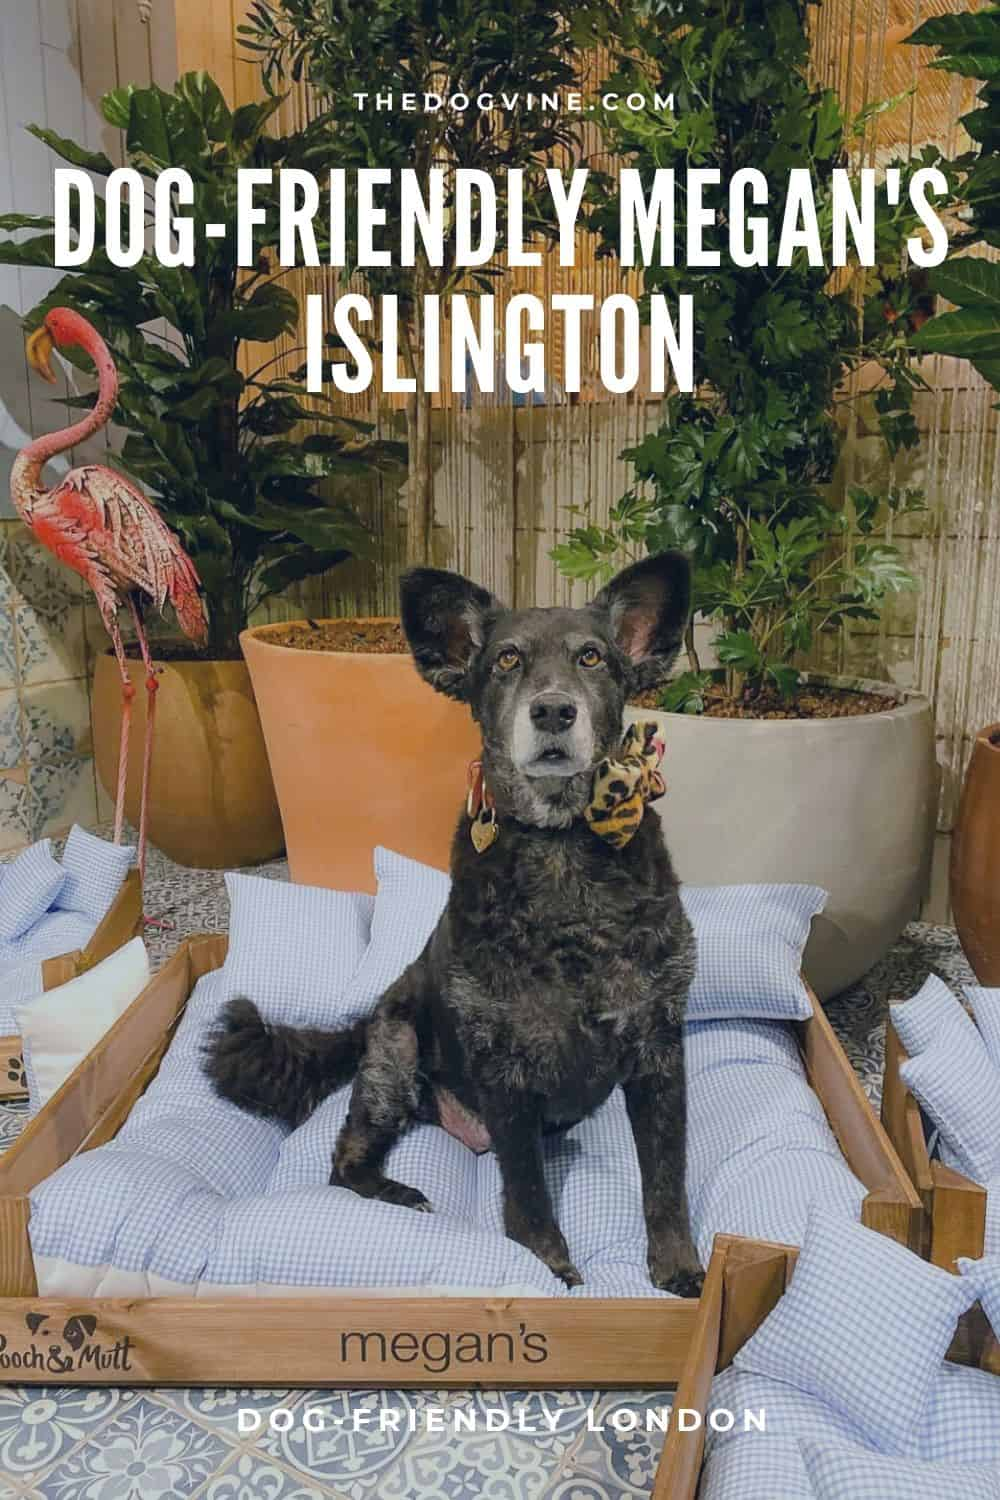 Dog-friendly Megan's Islington - Dog-friendly London 2